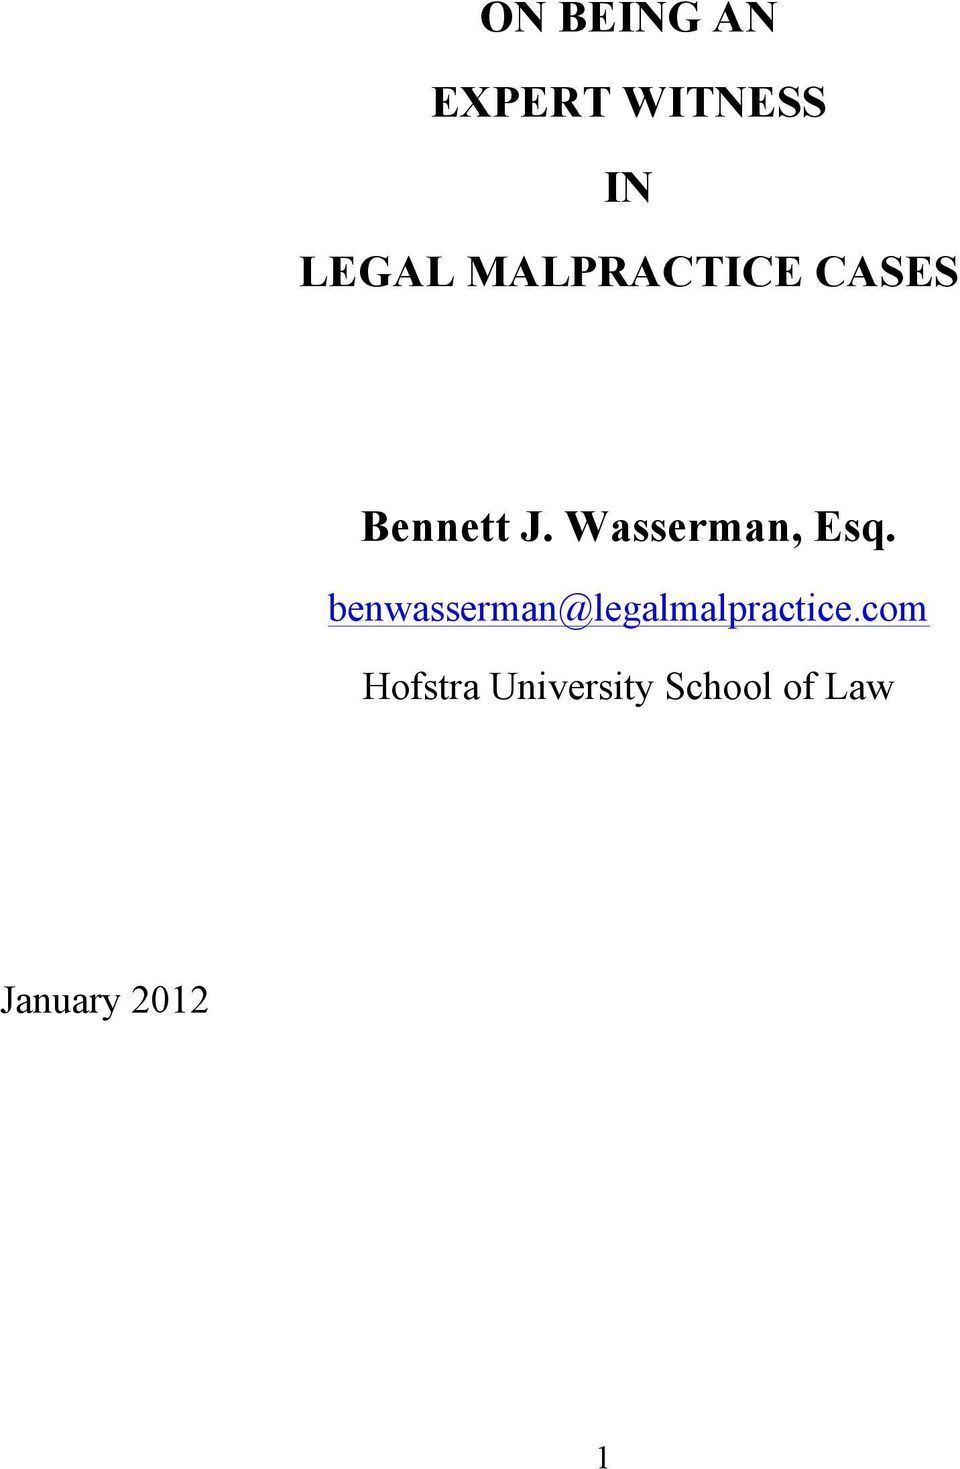 Wasserman, Esq.